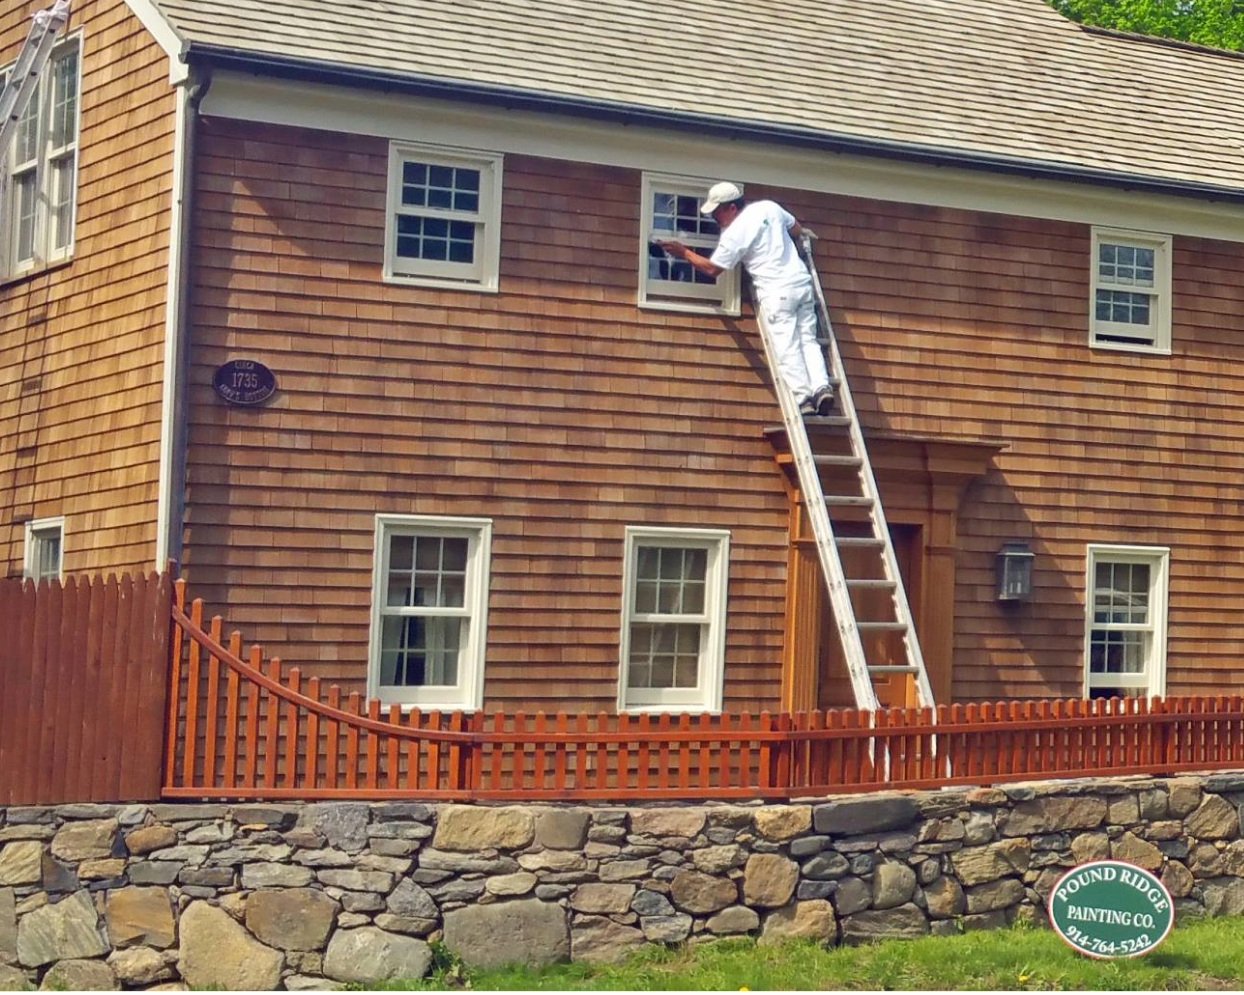 Pound Ridge Painting Co. - Fully licensed and insured professional local painting contractor with expertise in exterior and interior painting, as well as carpentry and carpentry repairs54 Westchester Avenue, Pound Ridgeinfo@poundridgepainting.com☎︎ 914-764-5259